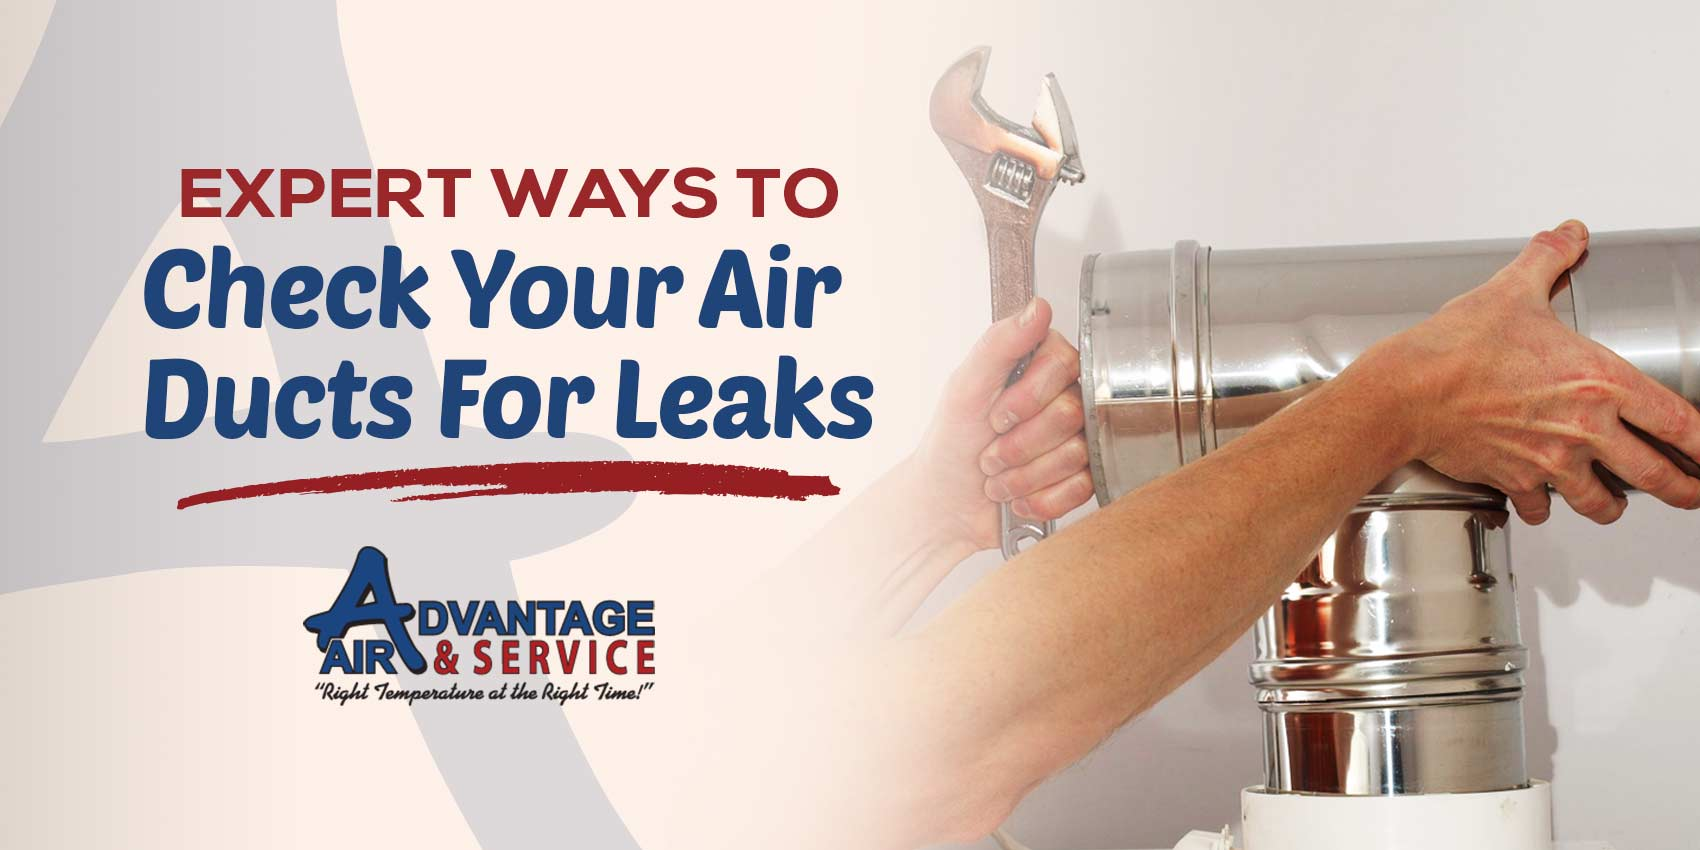 Expert Ways to Check Your Air Ducts For Leaks